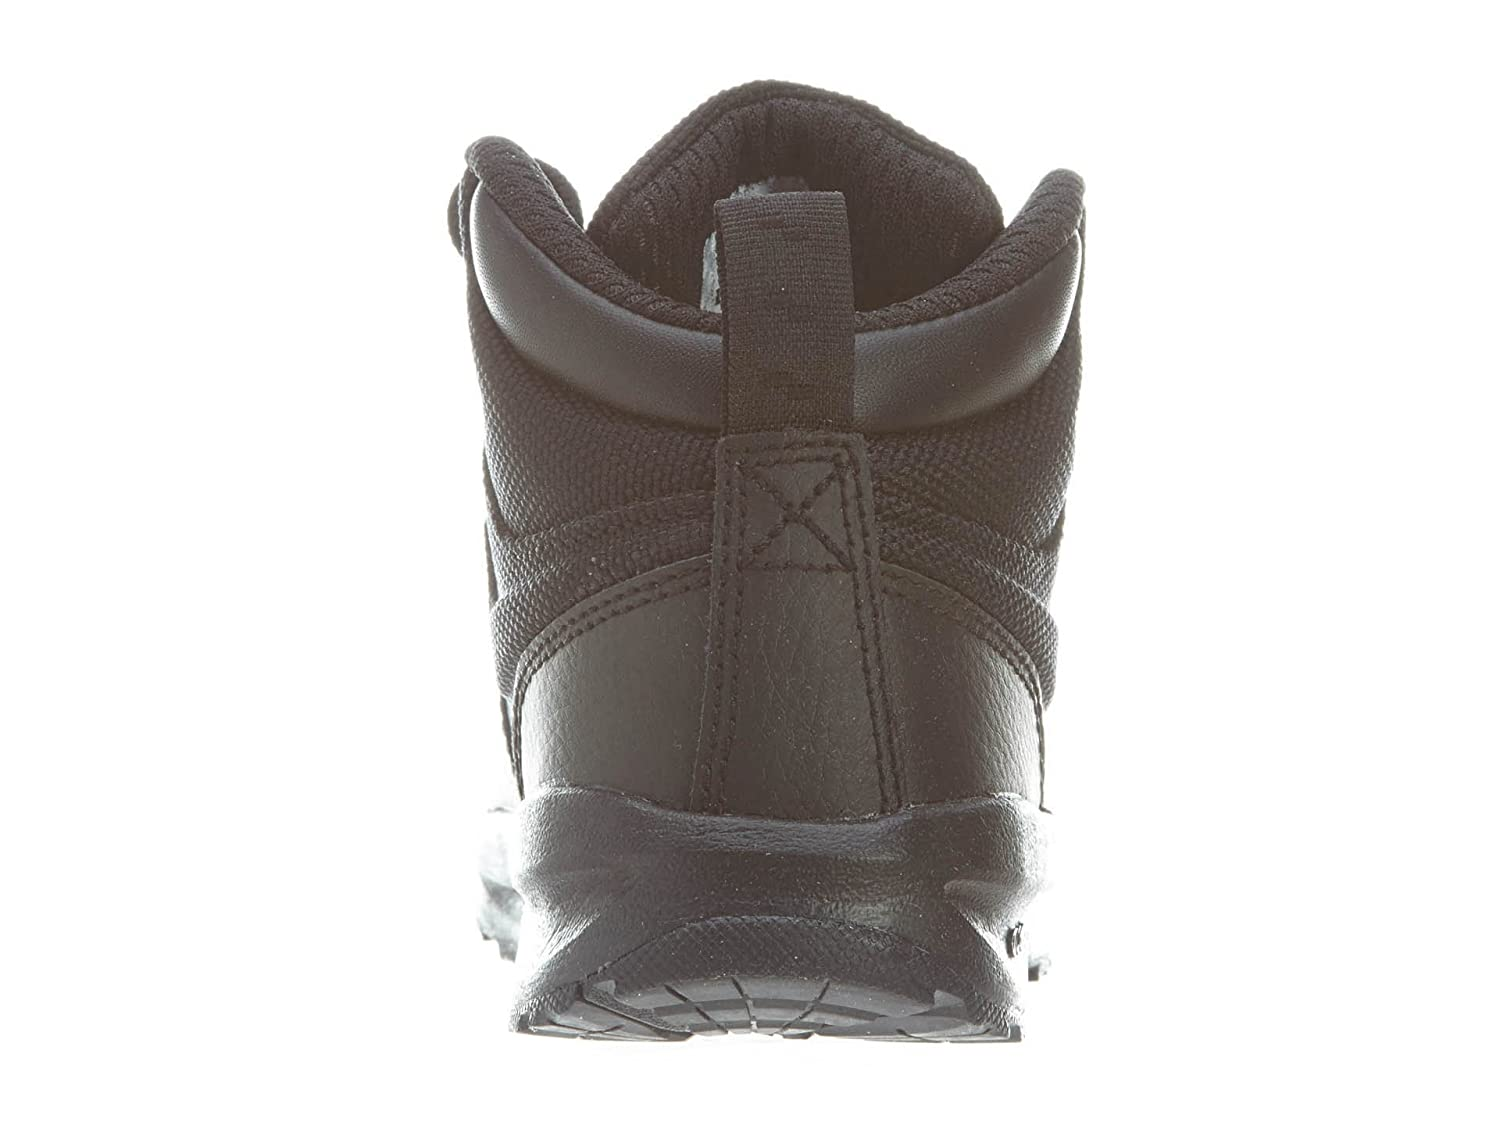 reputable site 727c7 3cff7 Amazon.com   NIKE All Conditions Gear Boots Infant s Shoes   Boots